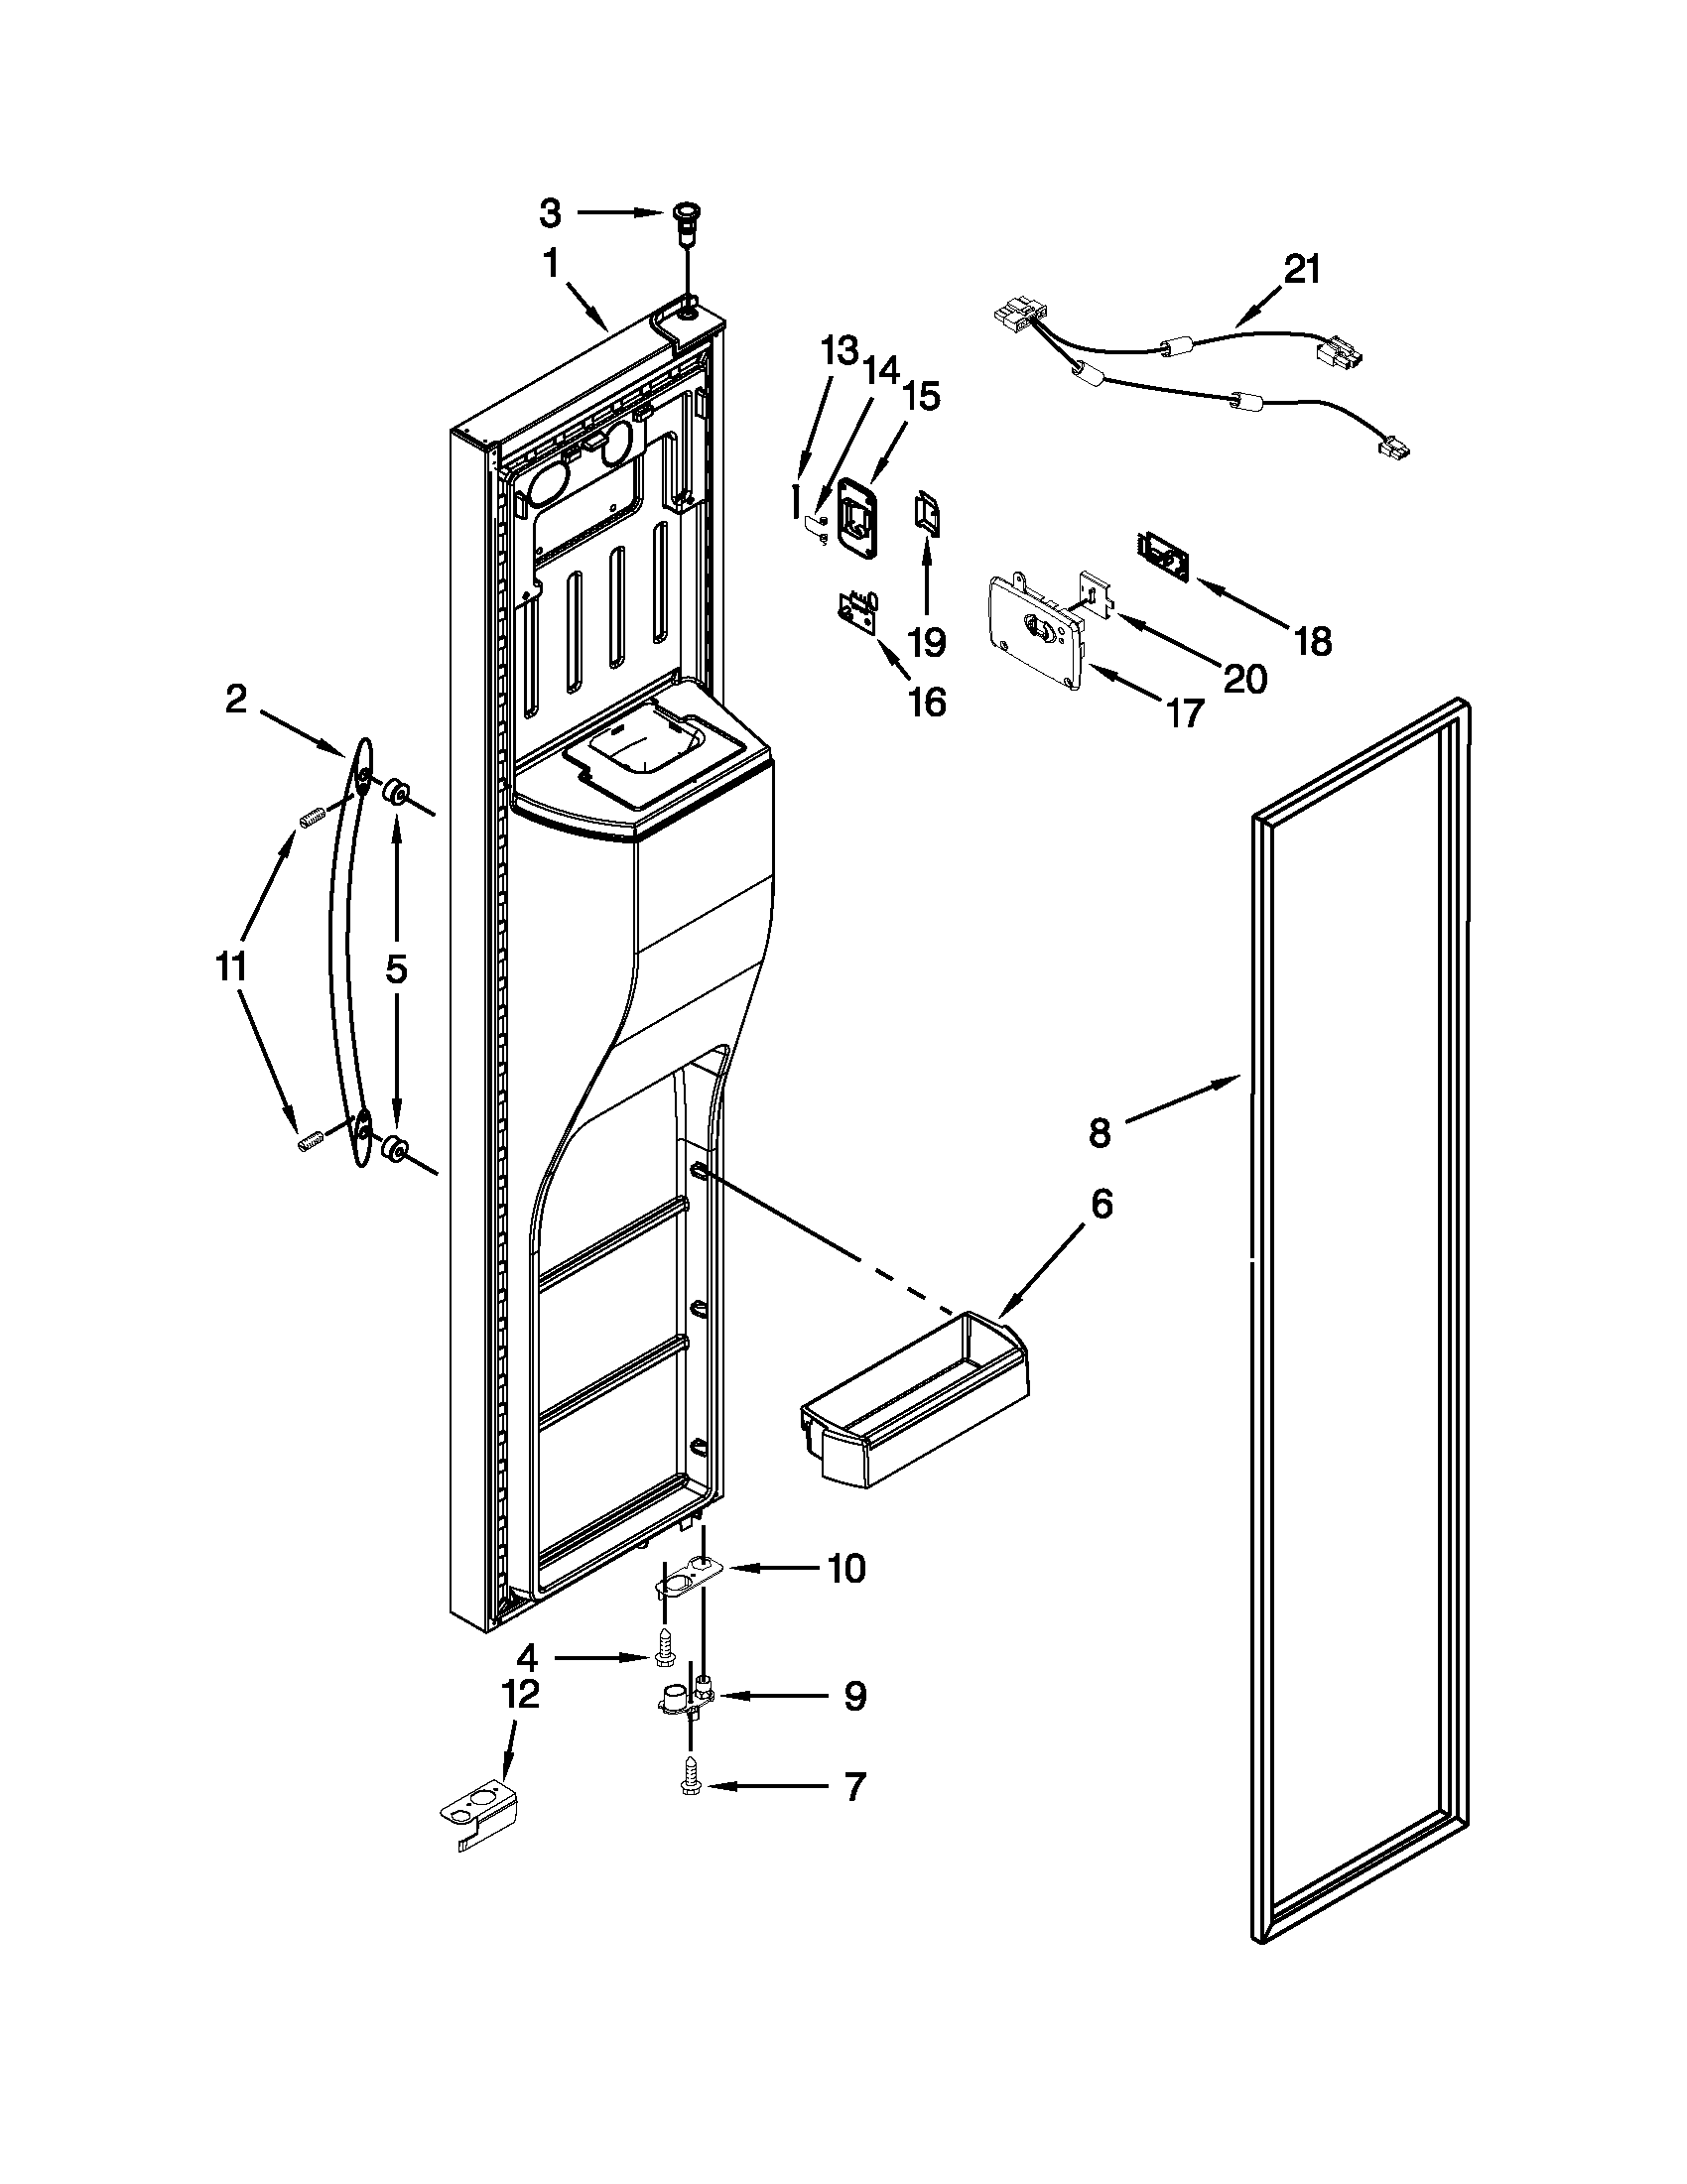 FREEZER DOOR Diagram & Parts List for Model 10651169210